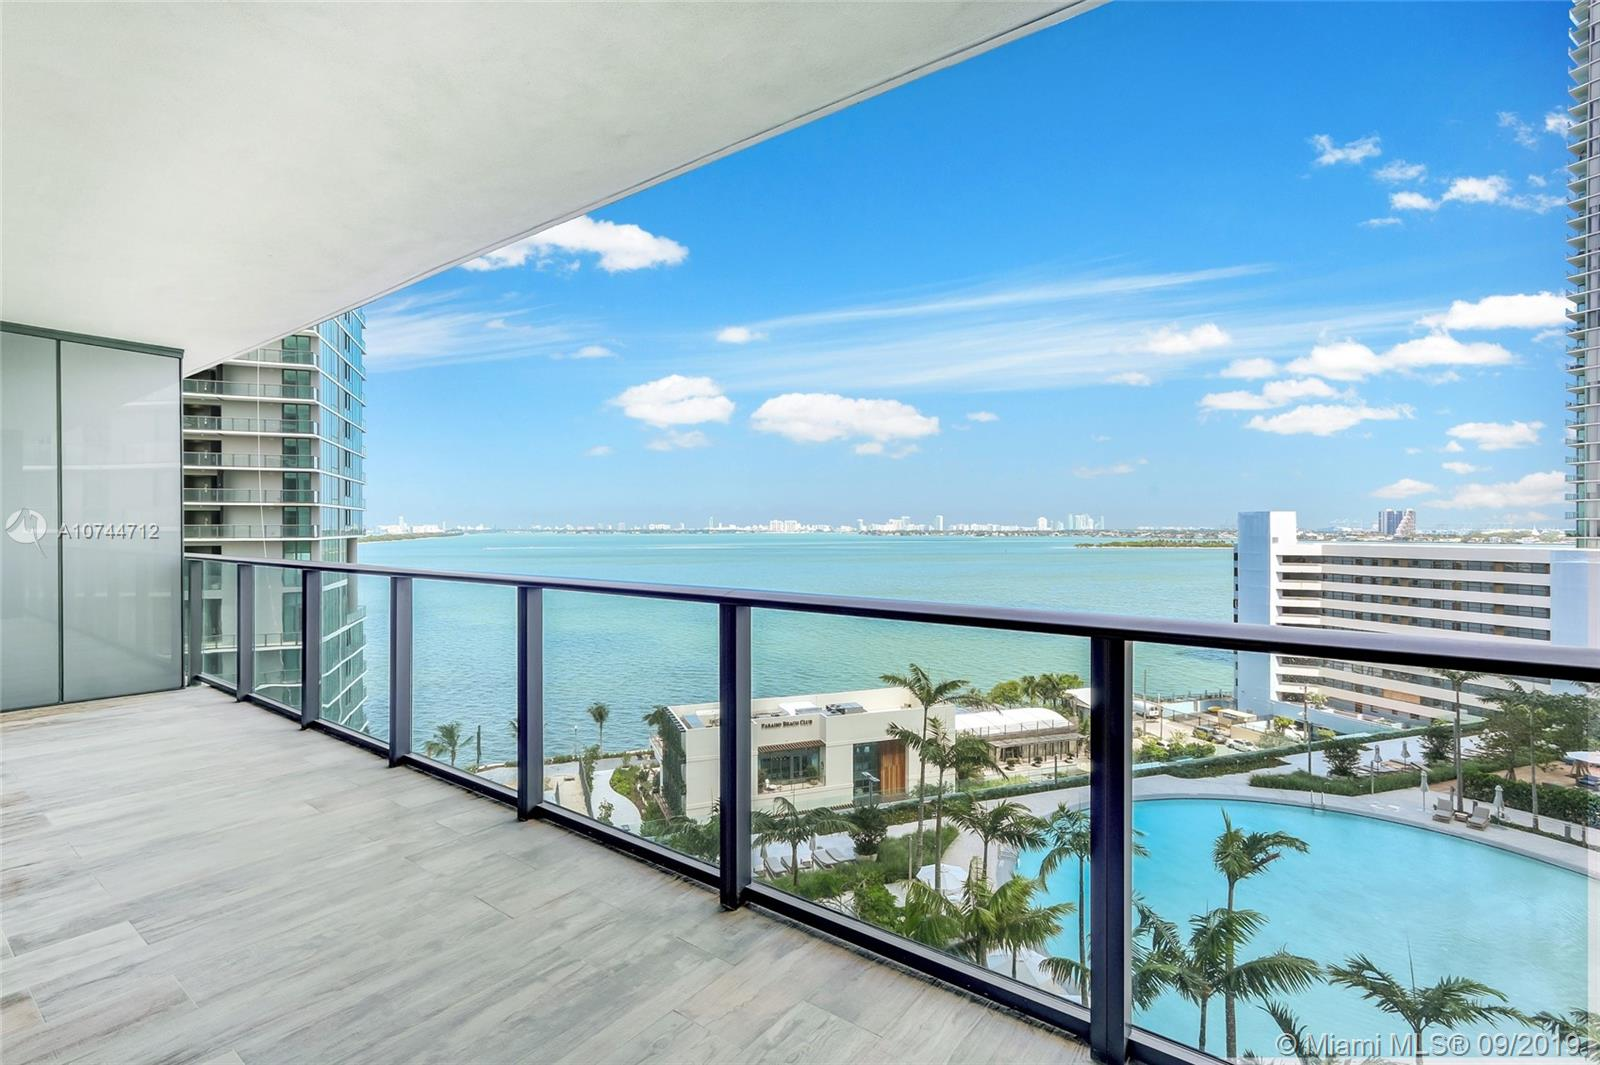 650 NE 32nd St #1003 For Sale A10744712, FL